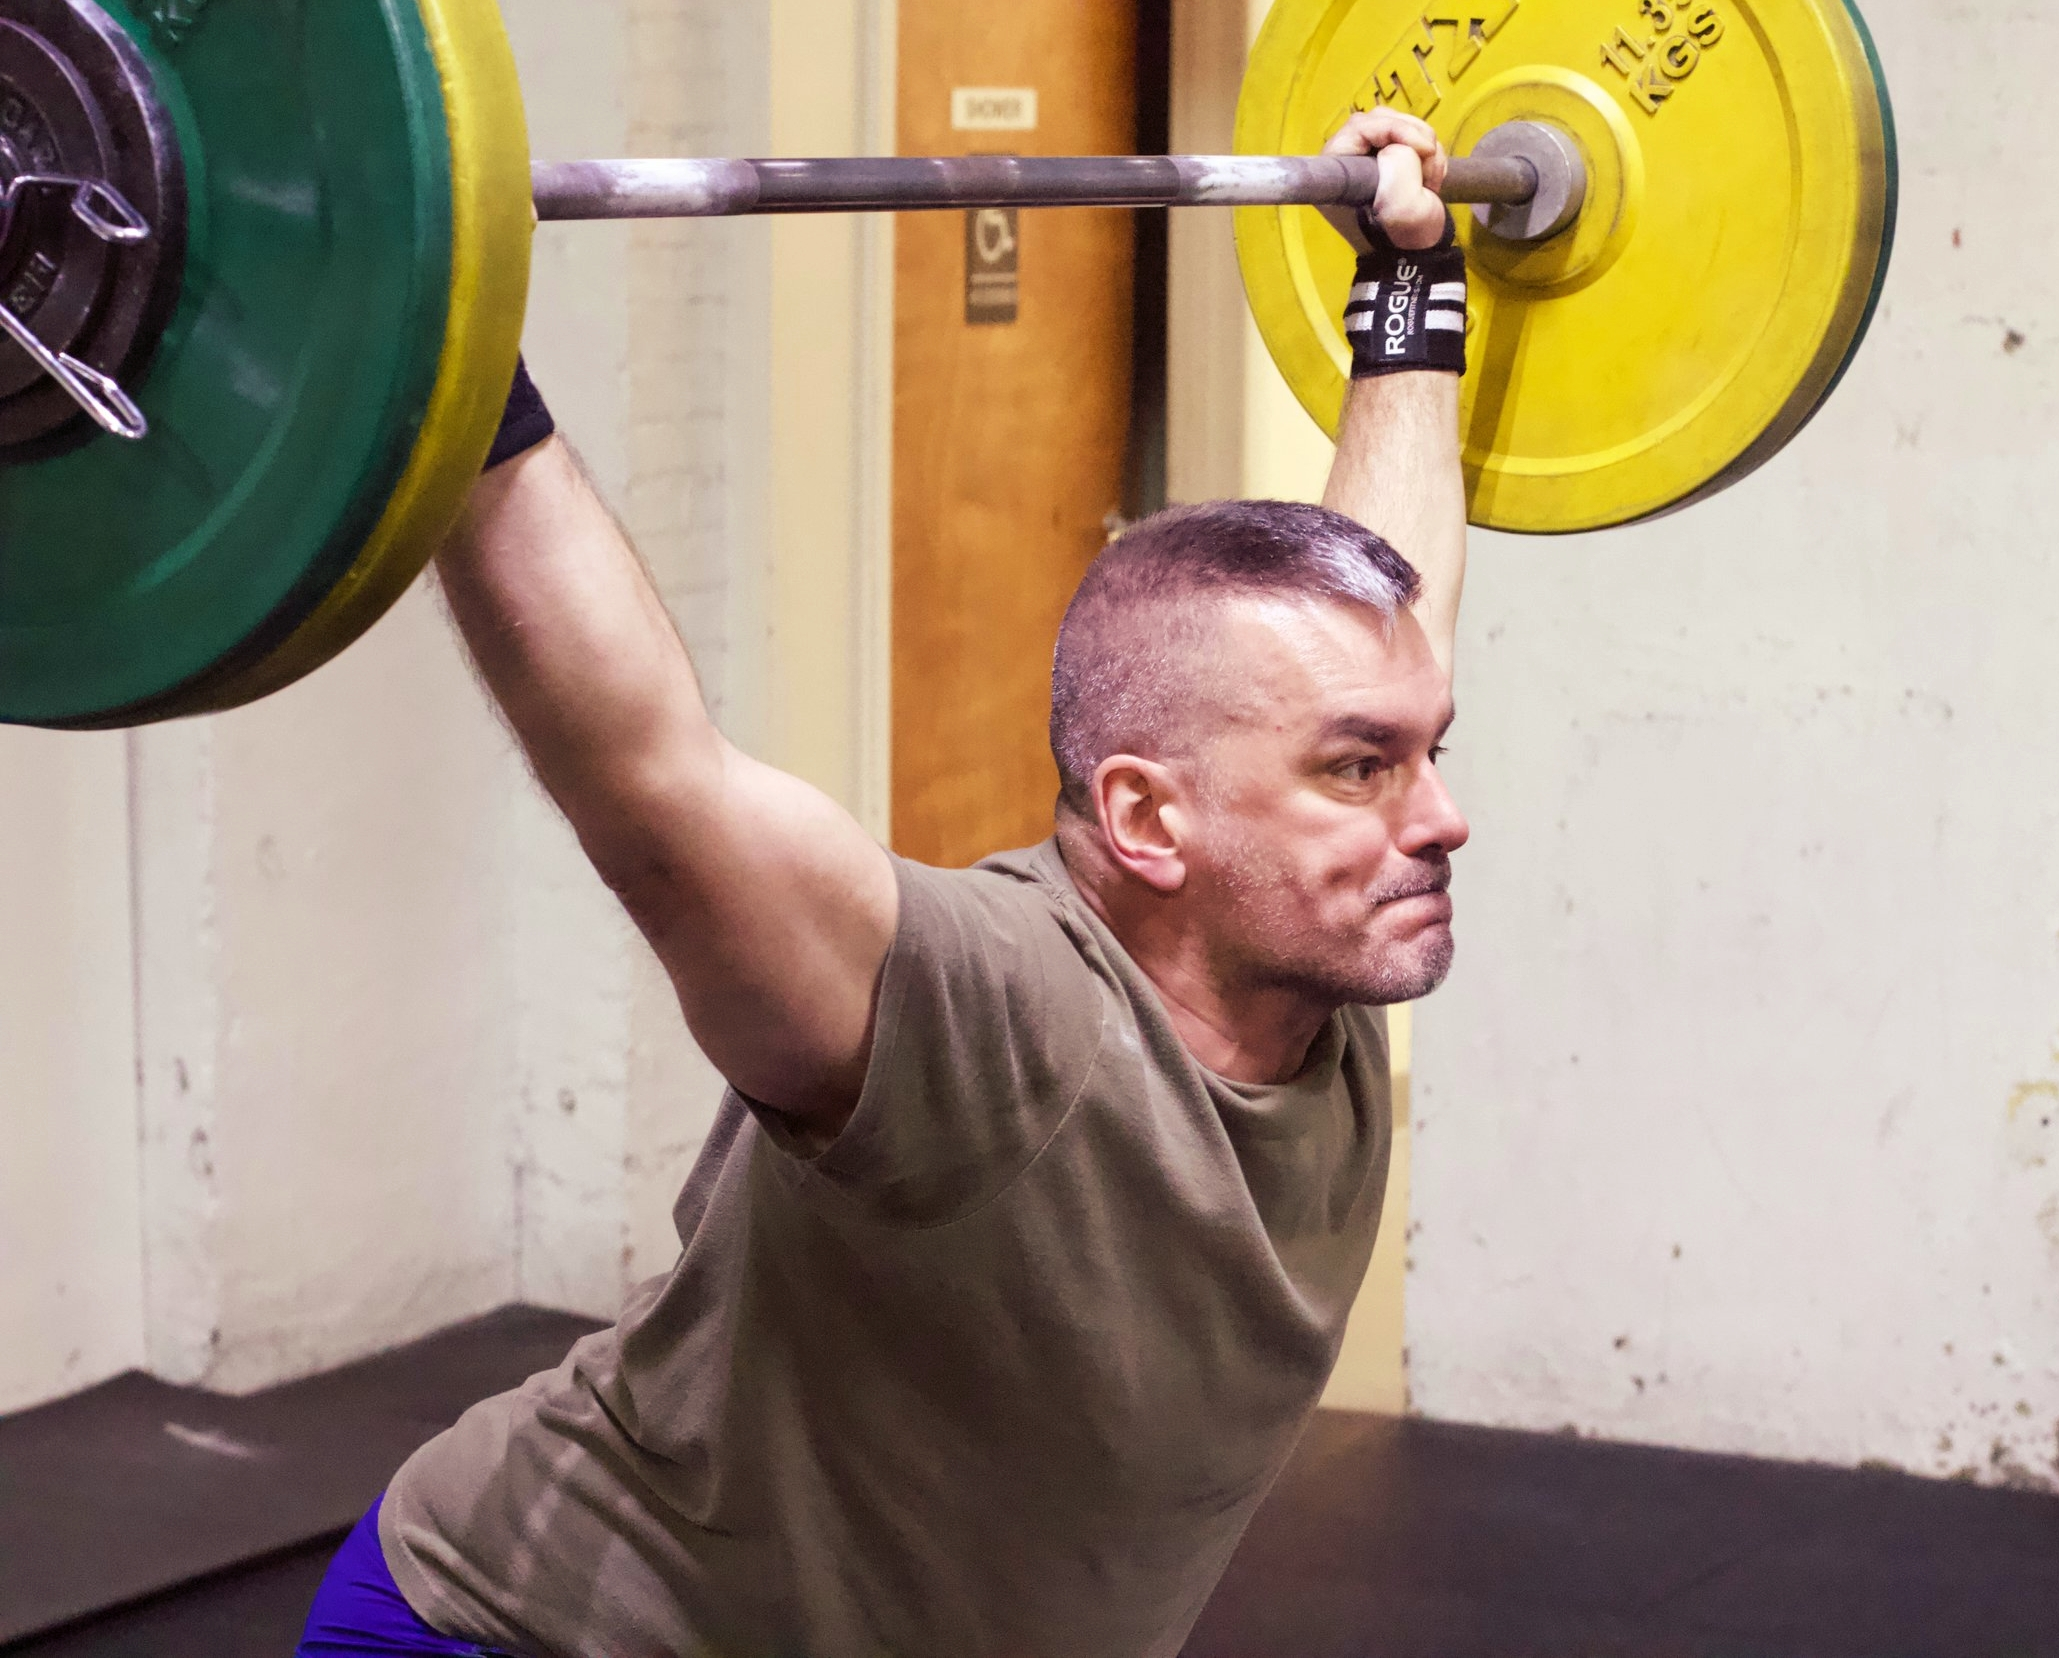 PVCF athlete, John Aube stays focused and strong! (The awesome haircut helps too!)